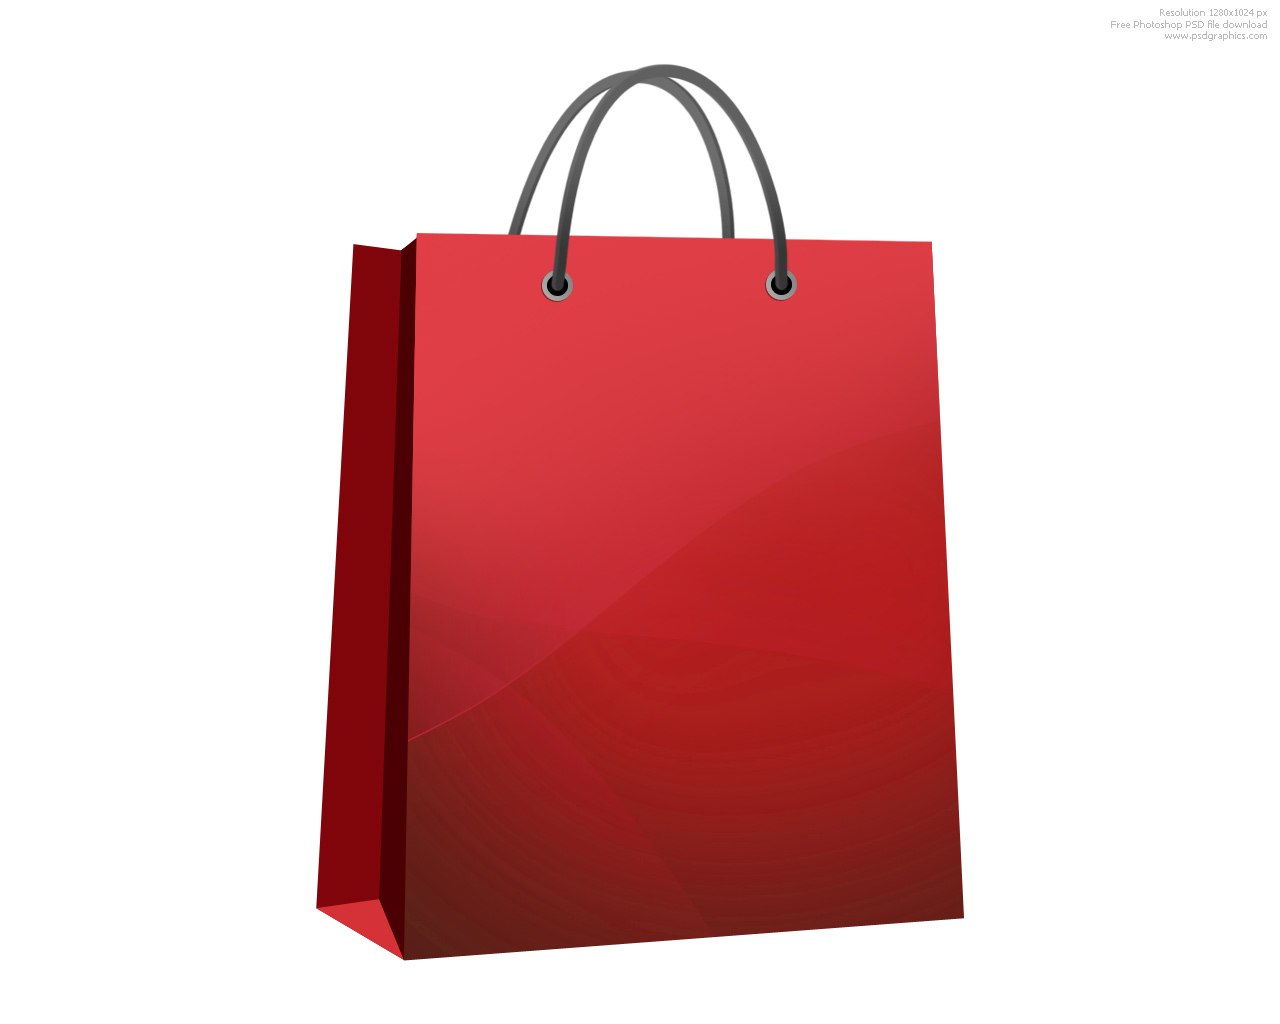 651 Shopping Bag free clipart.